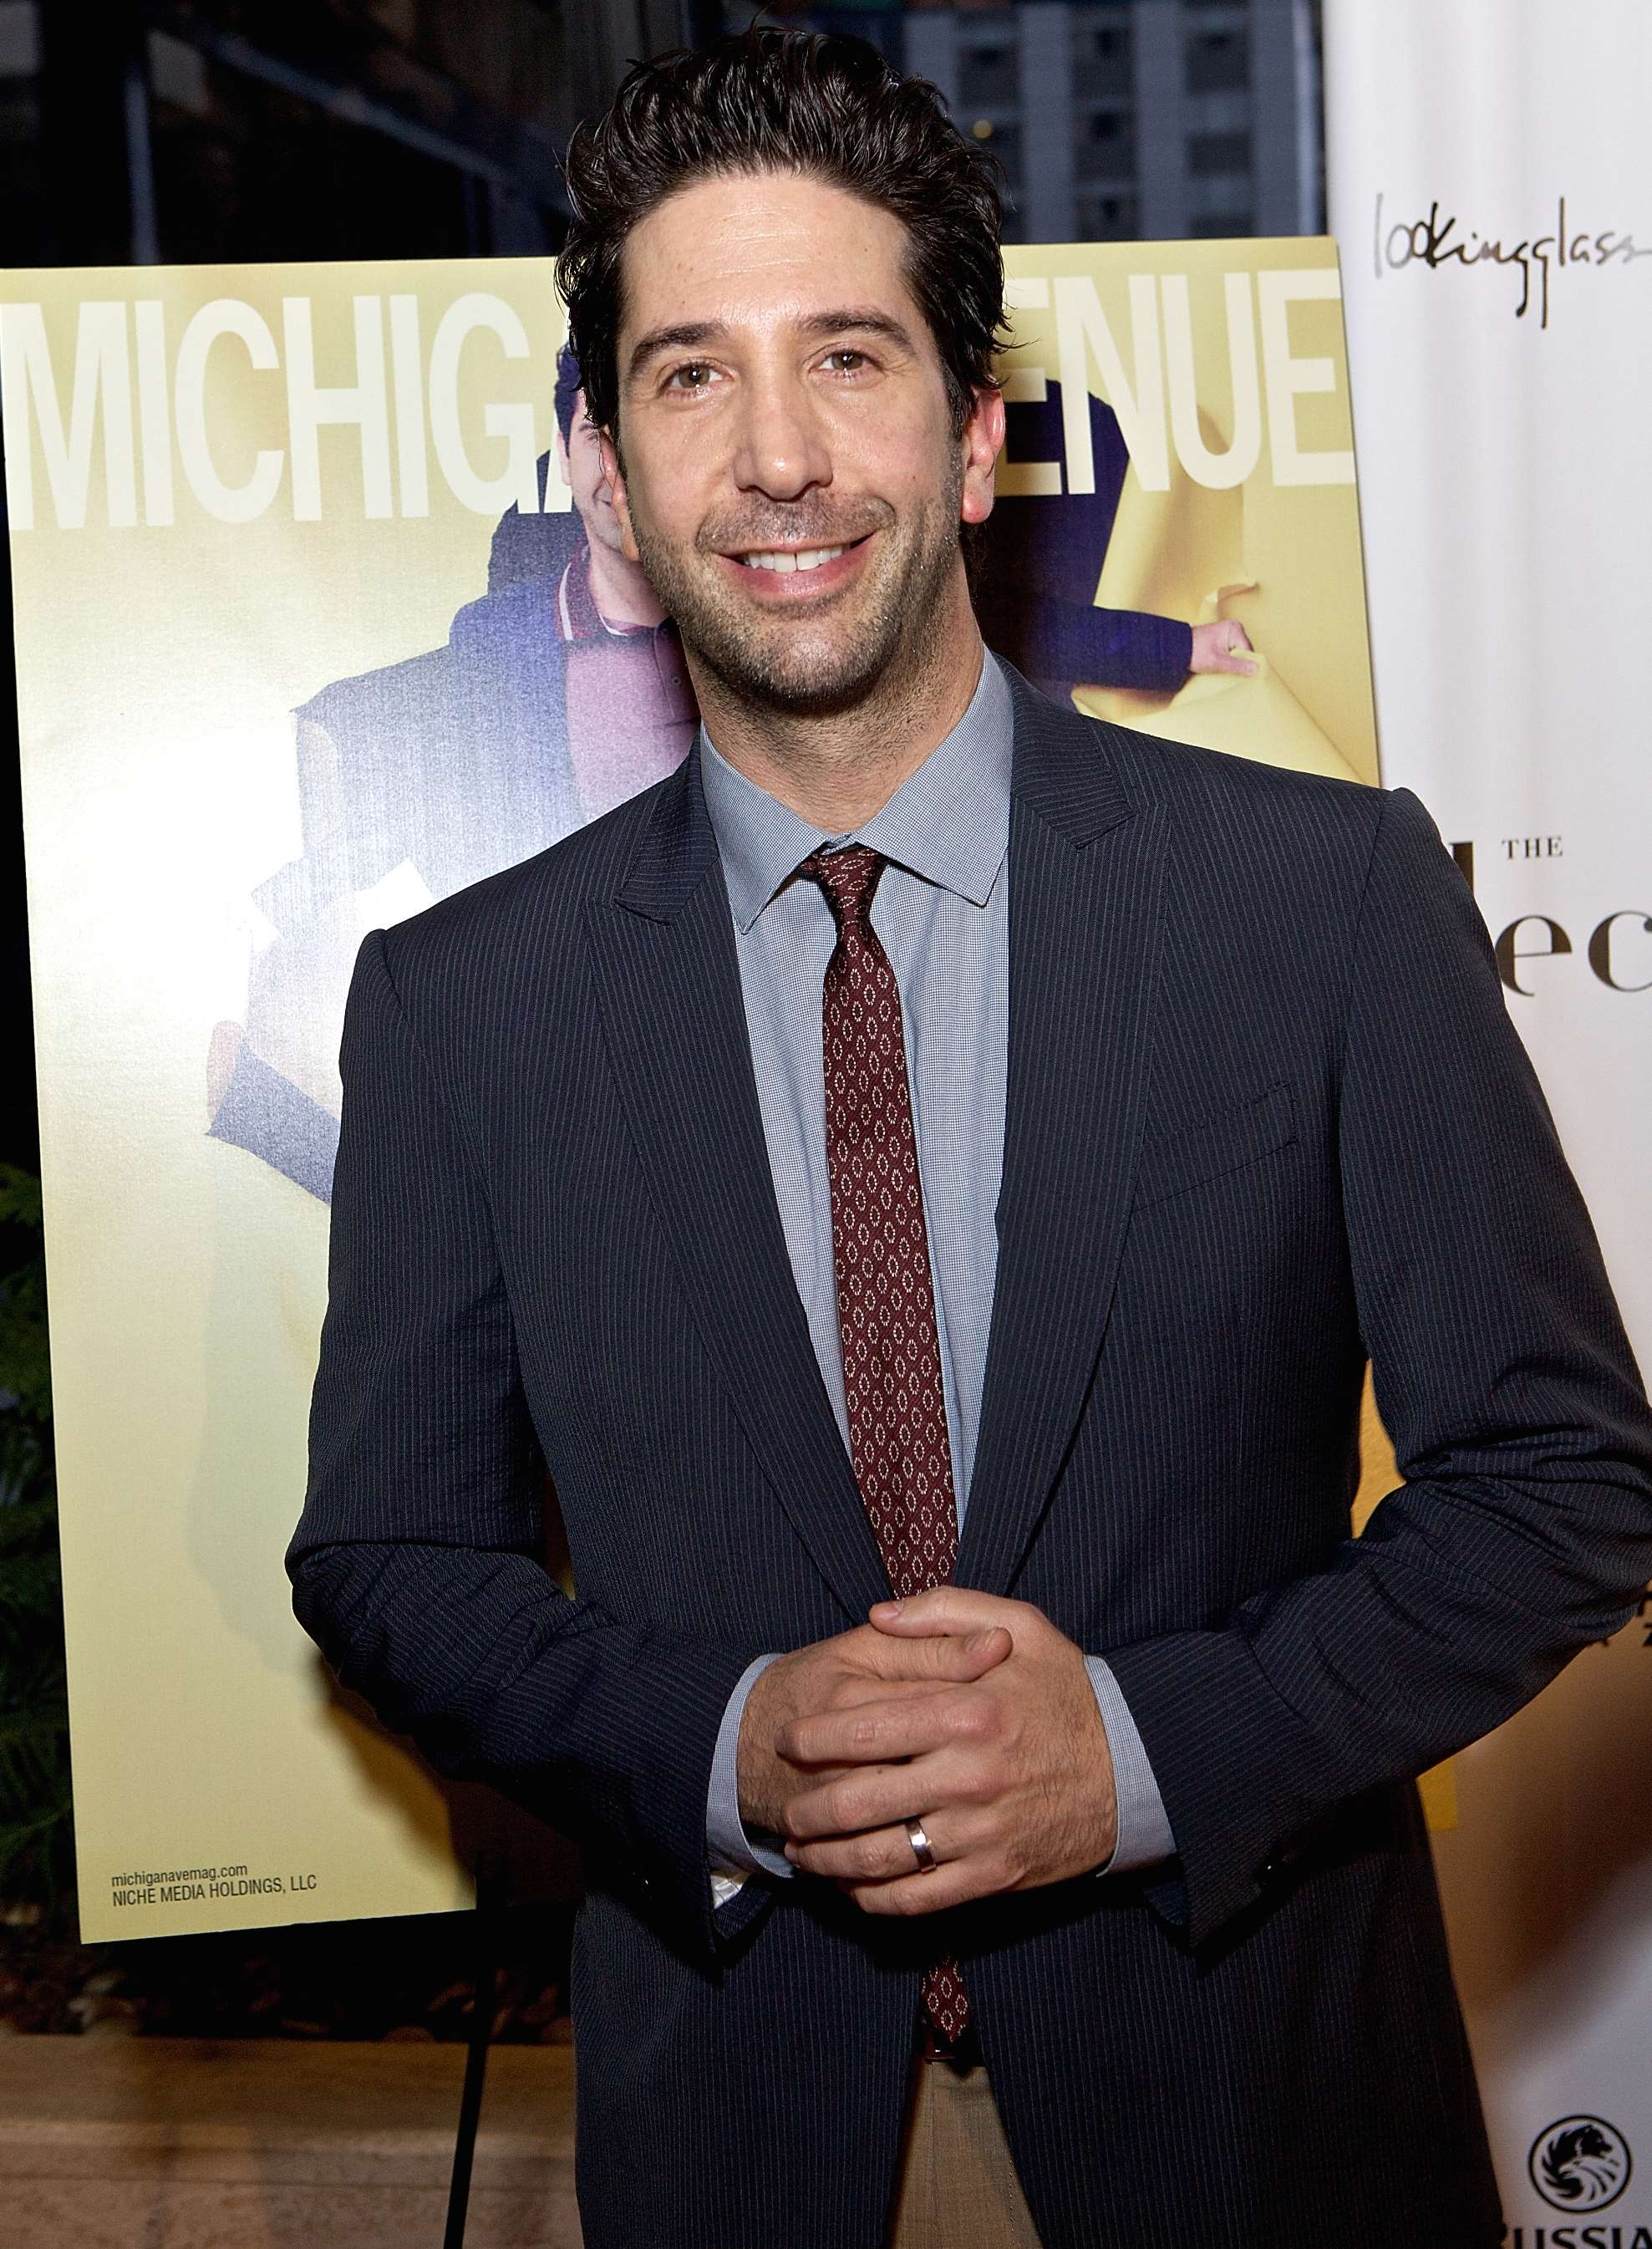 David Schwimmer interpretará a Robert Kardashian en la serie American Crime Story: The People vs. O.J. Simpson'. Foto: Getty Images